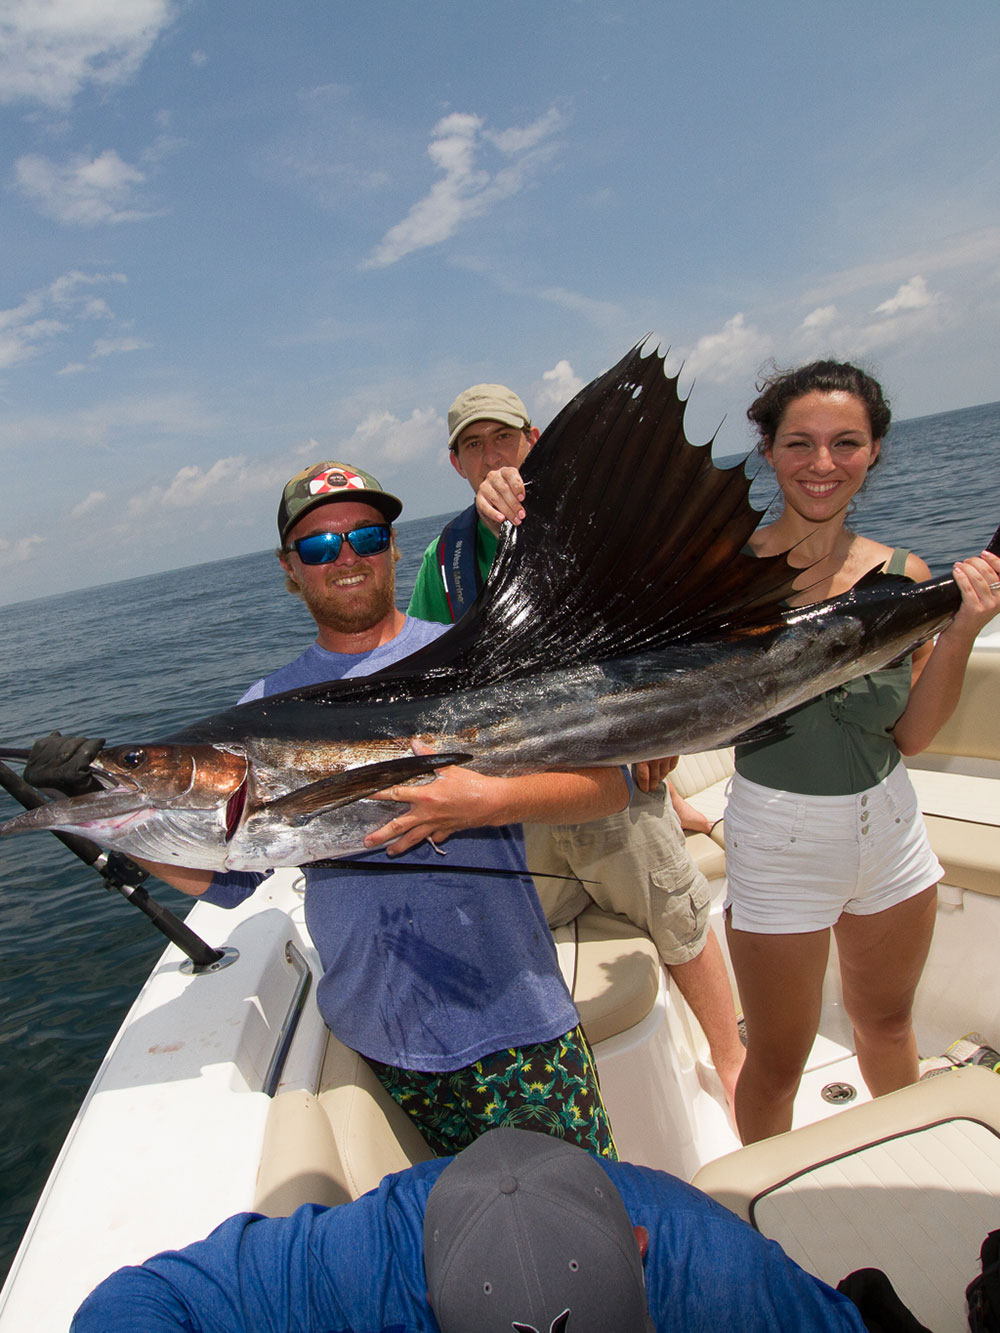 two people holding large fish with one person standing in the background all on a boat